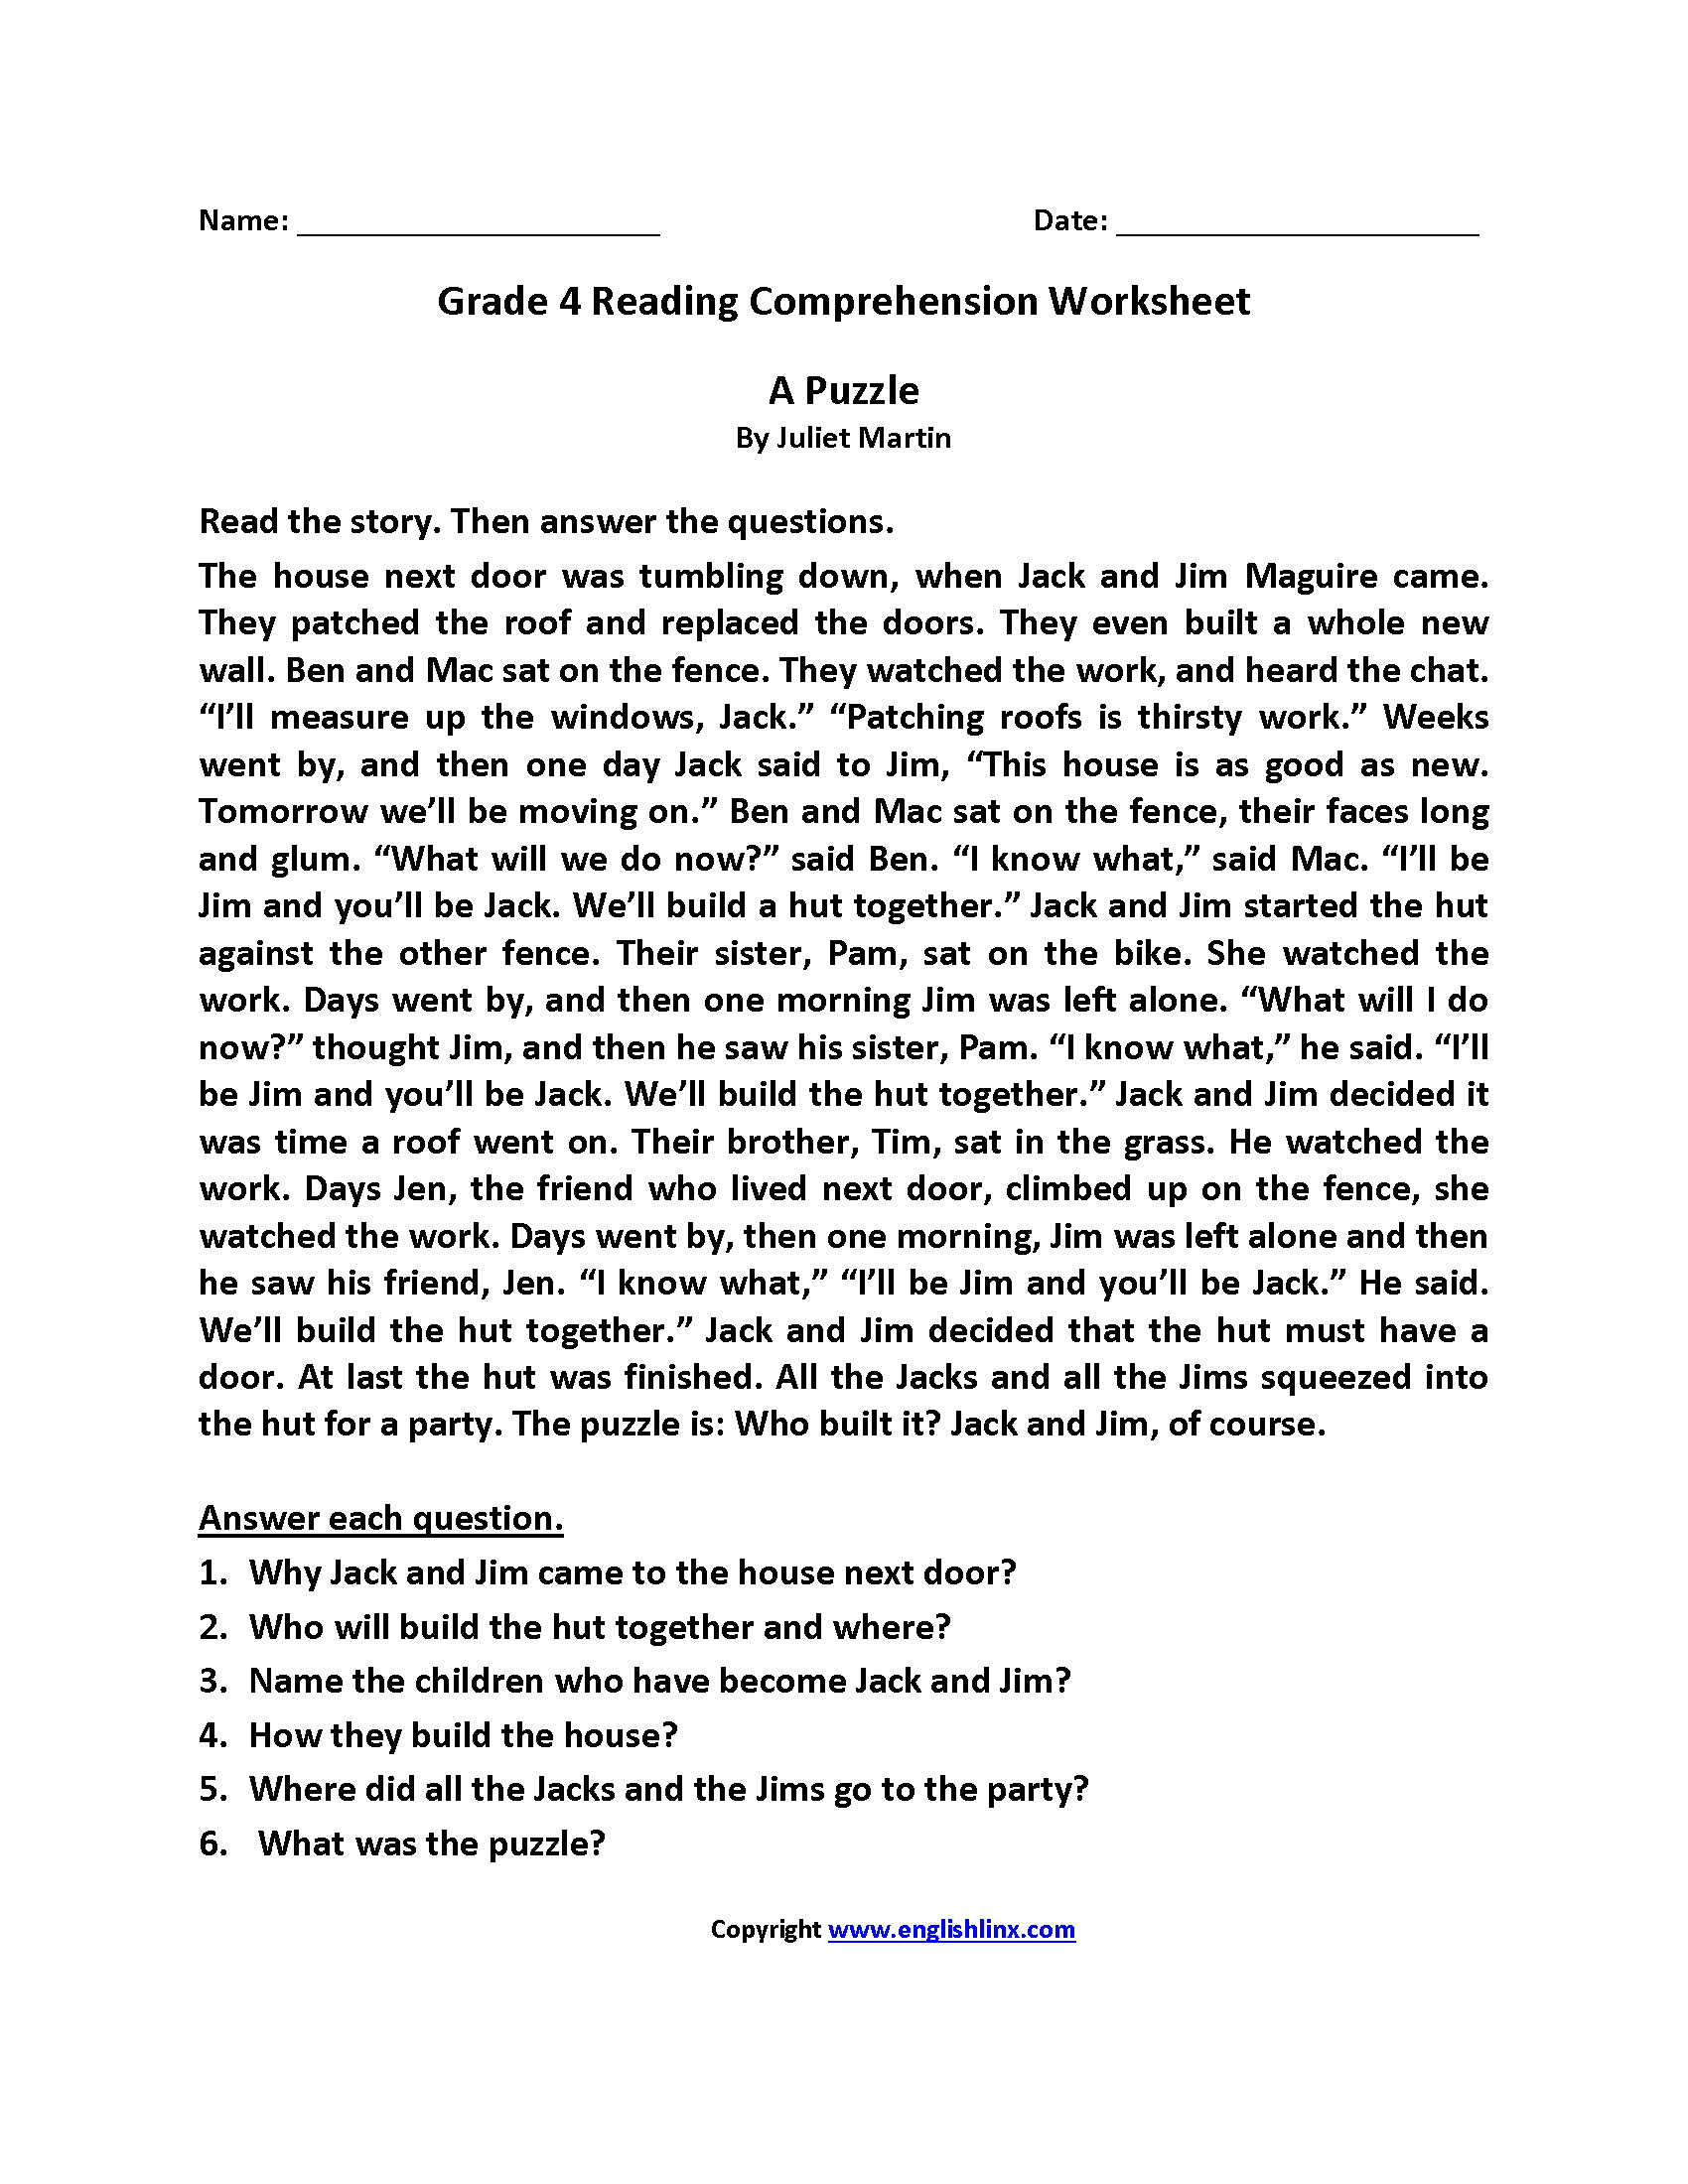 Thanksgiving Reading Comprehension Worksheets 4th Grade Reading Prehension Worksheets Thanksgiving